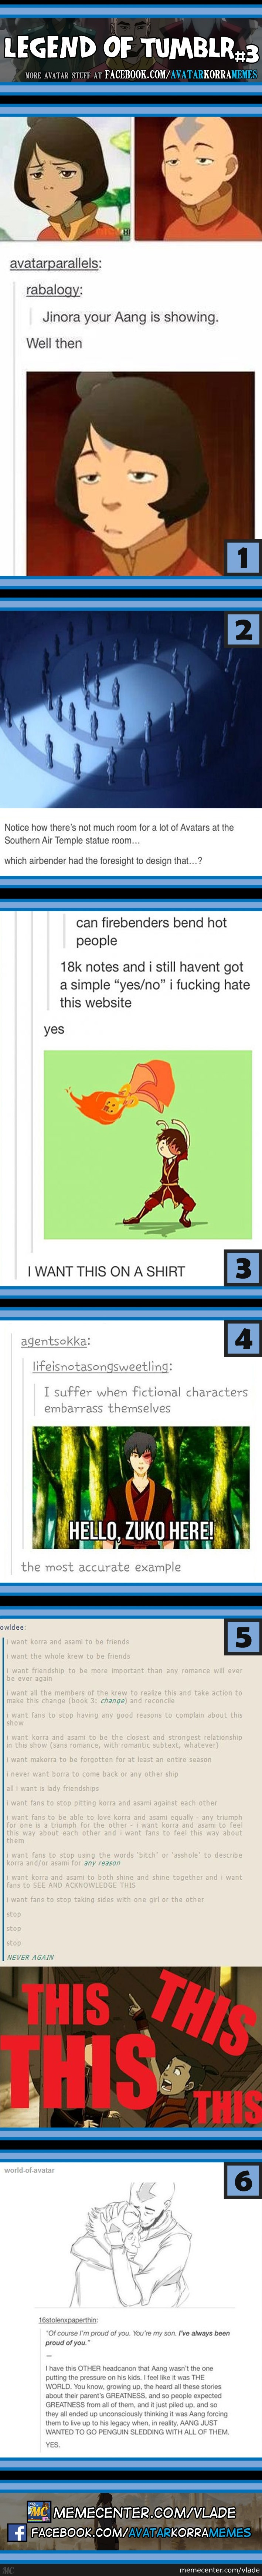 Legend Of Tumblr #3